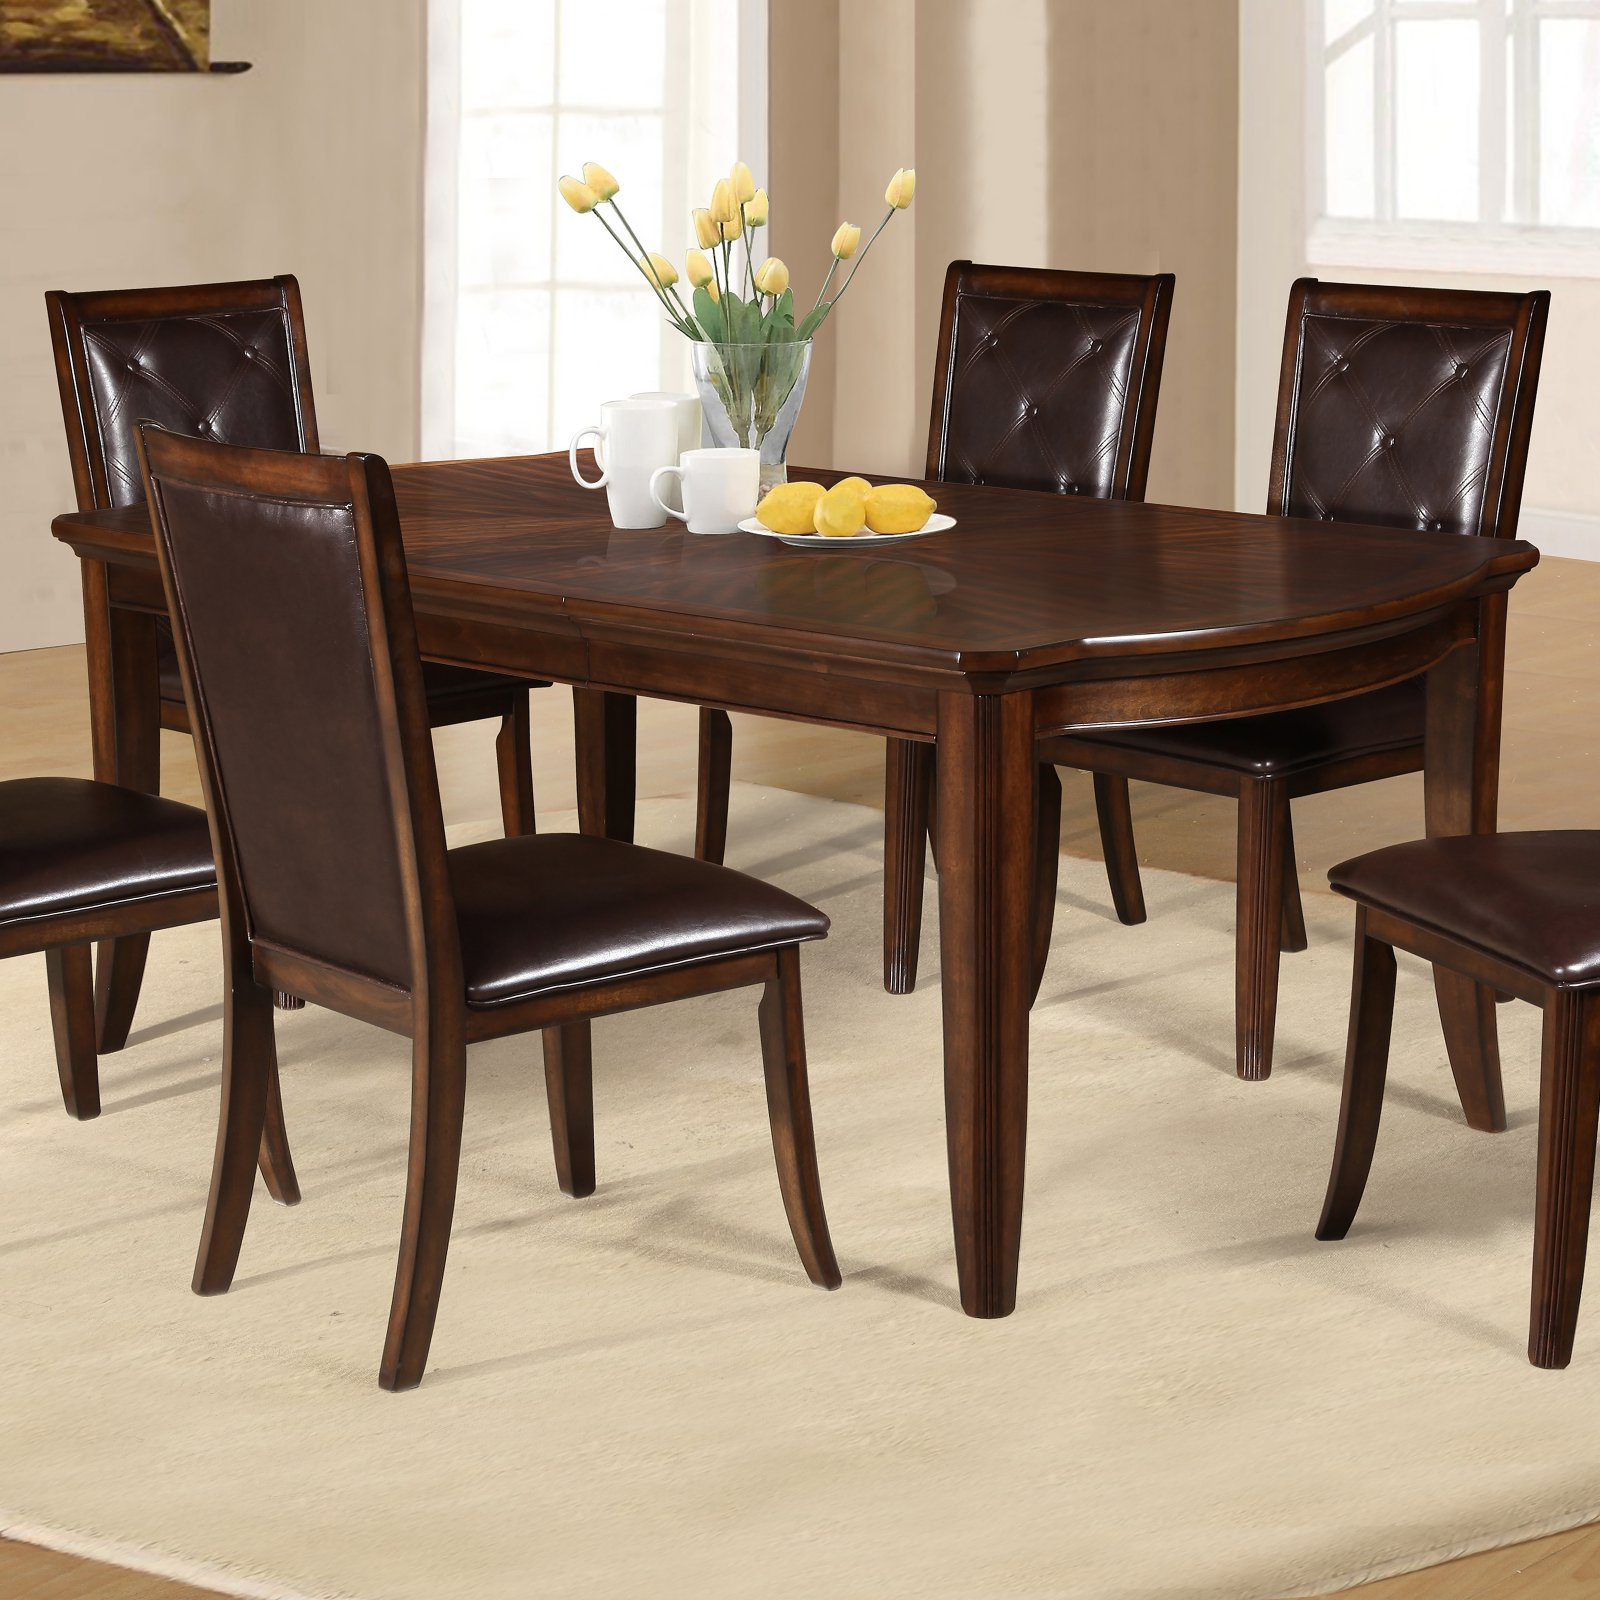 Home Source Industries Matin Dining Table